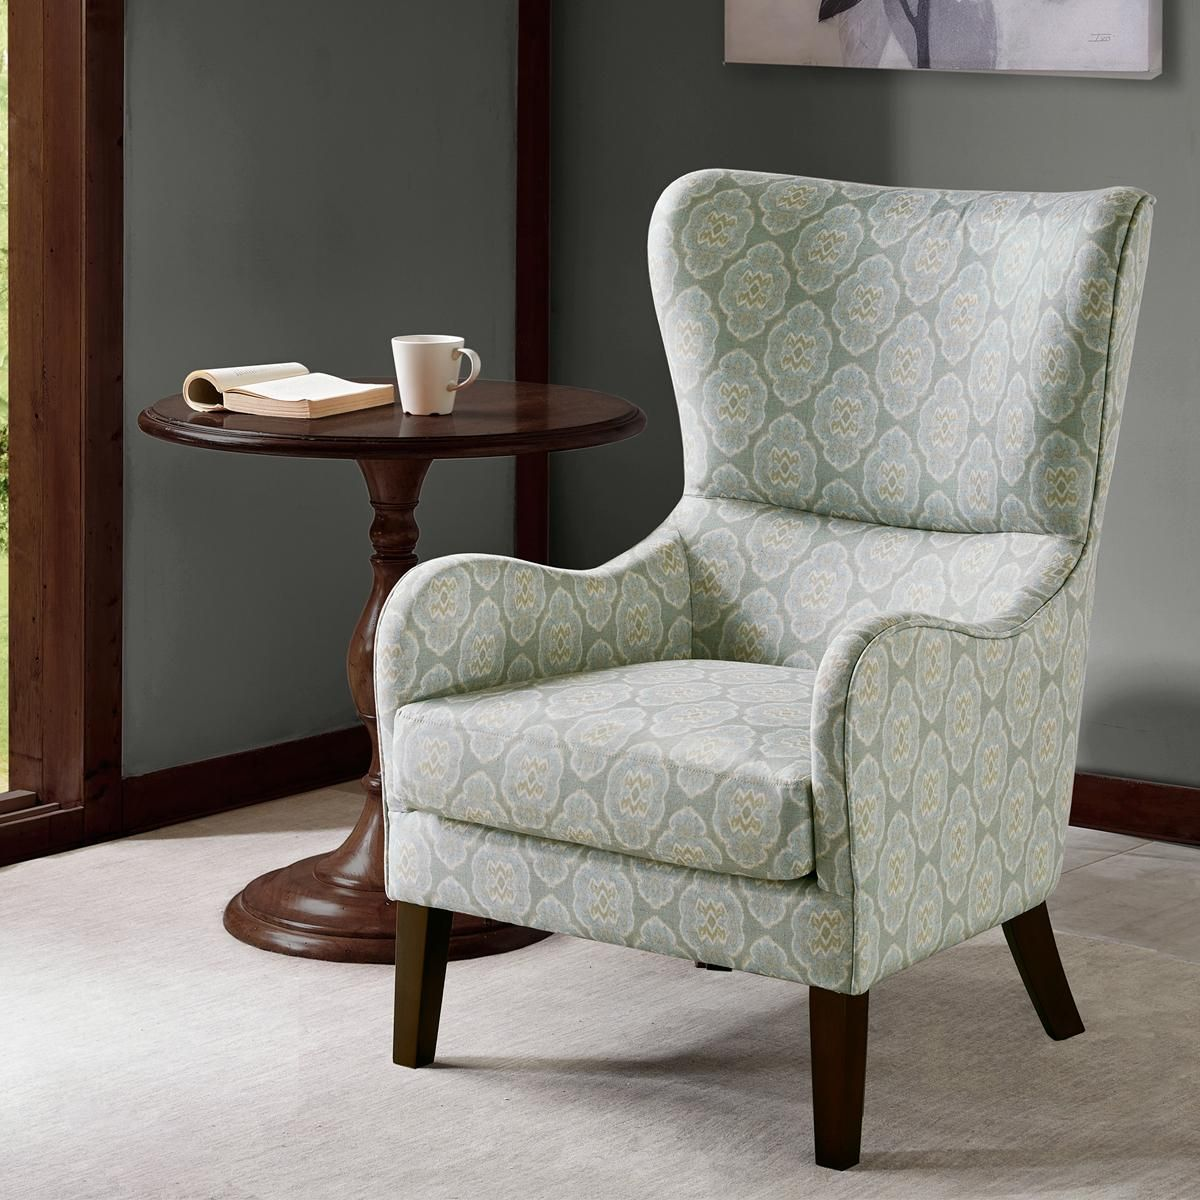 Hampton Park Arianna Swoop Wing Chair In Archer Heron Nebraska Furniture Mart Floral Chair Living Room Blue Accent Chairs Living Room Chairs #nebraska #furniture #mart #living #room #chairs